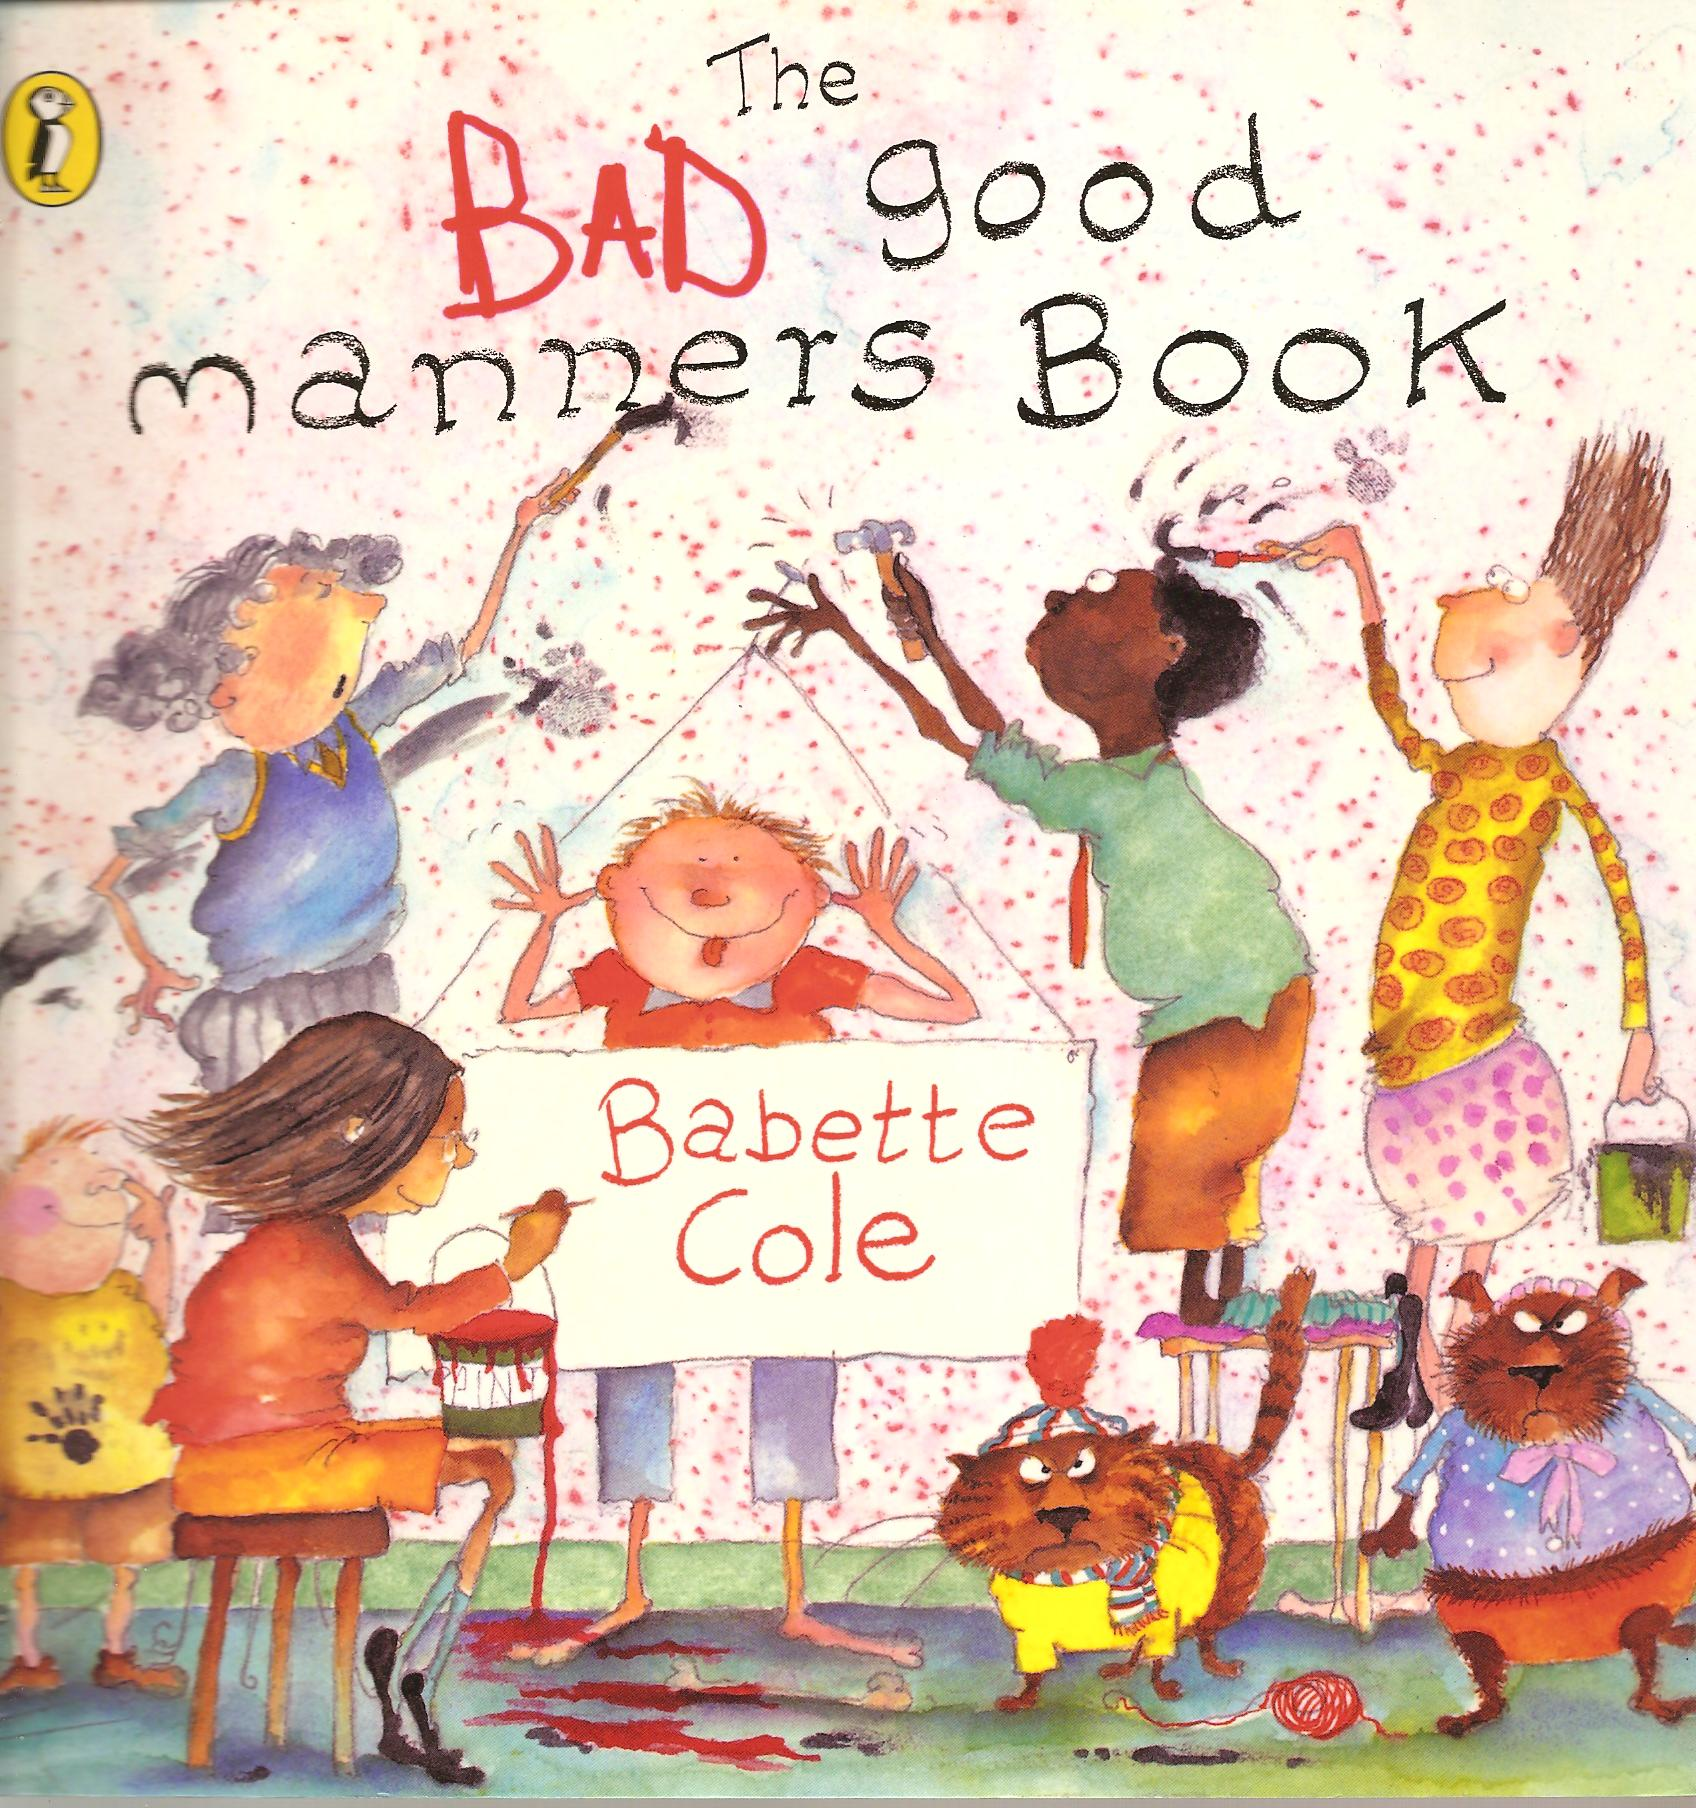 The Bad Good Manners Book